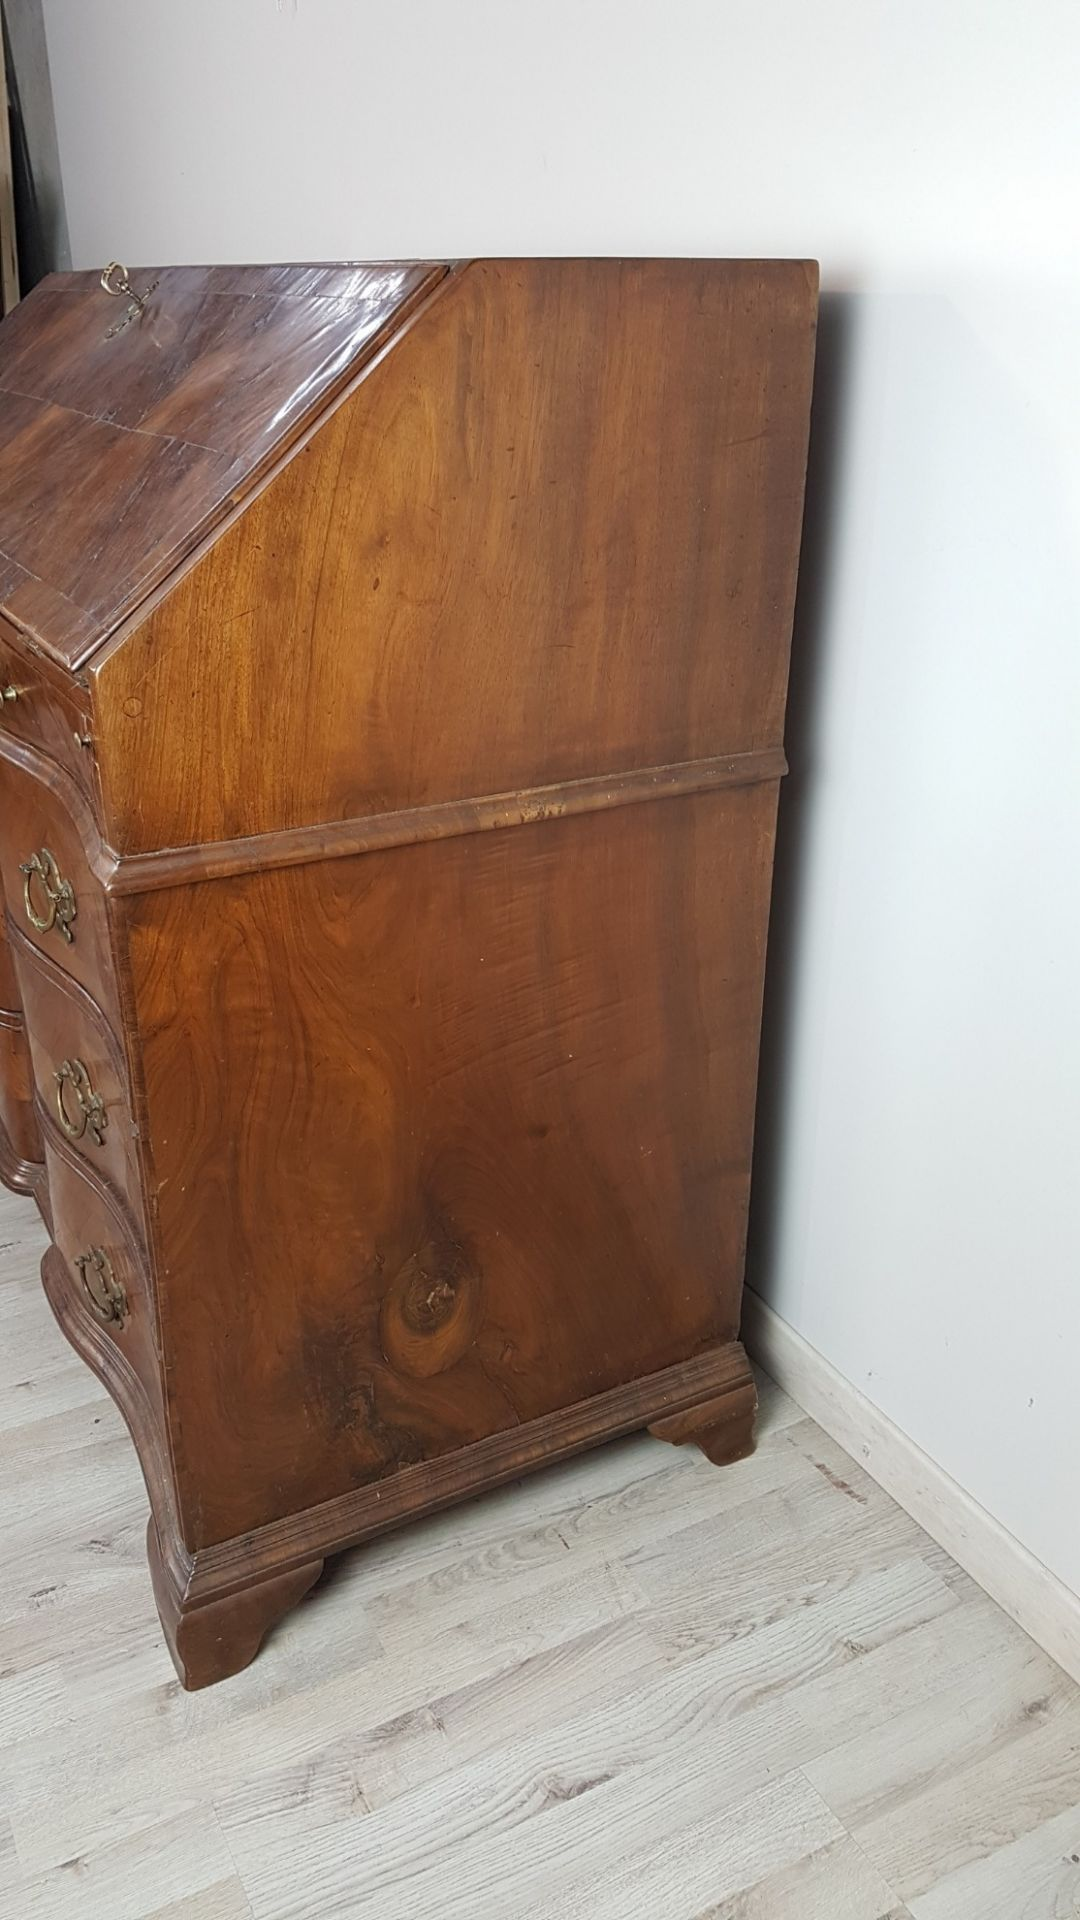 18th Century Italian Antique Louis XV Walnut Chest of Drawers with Secretaire